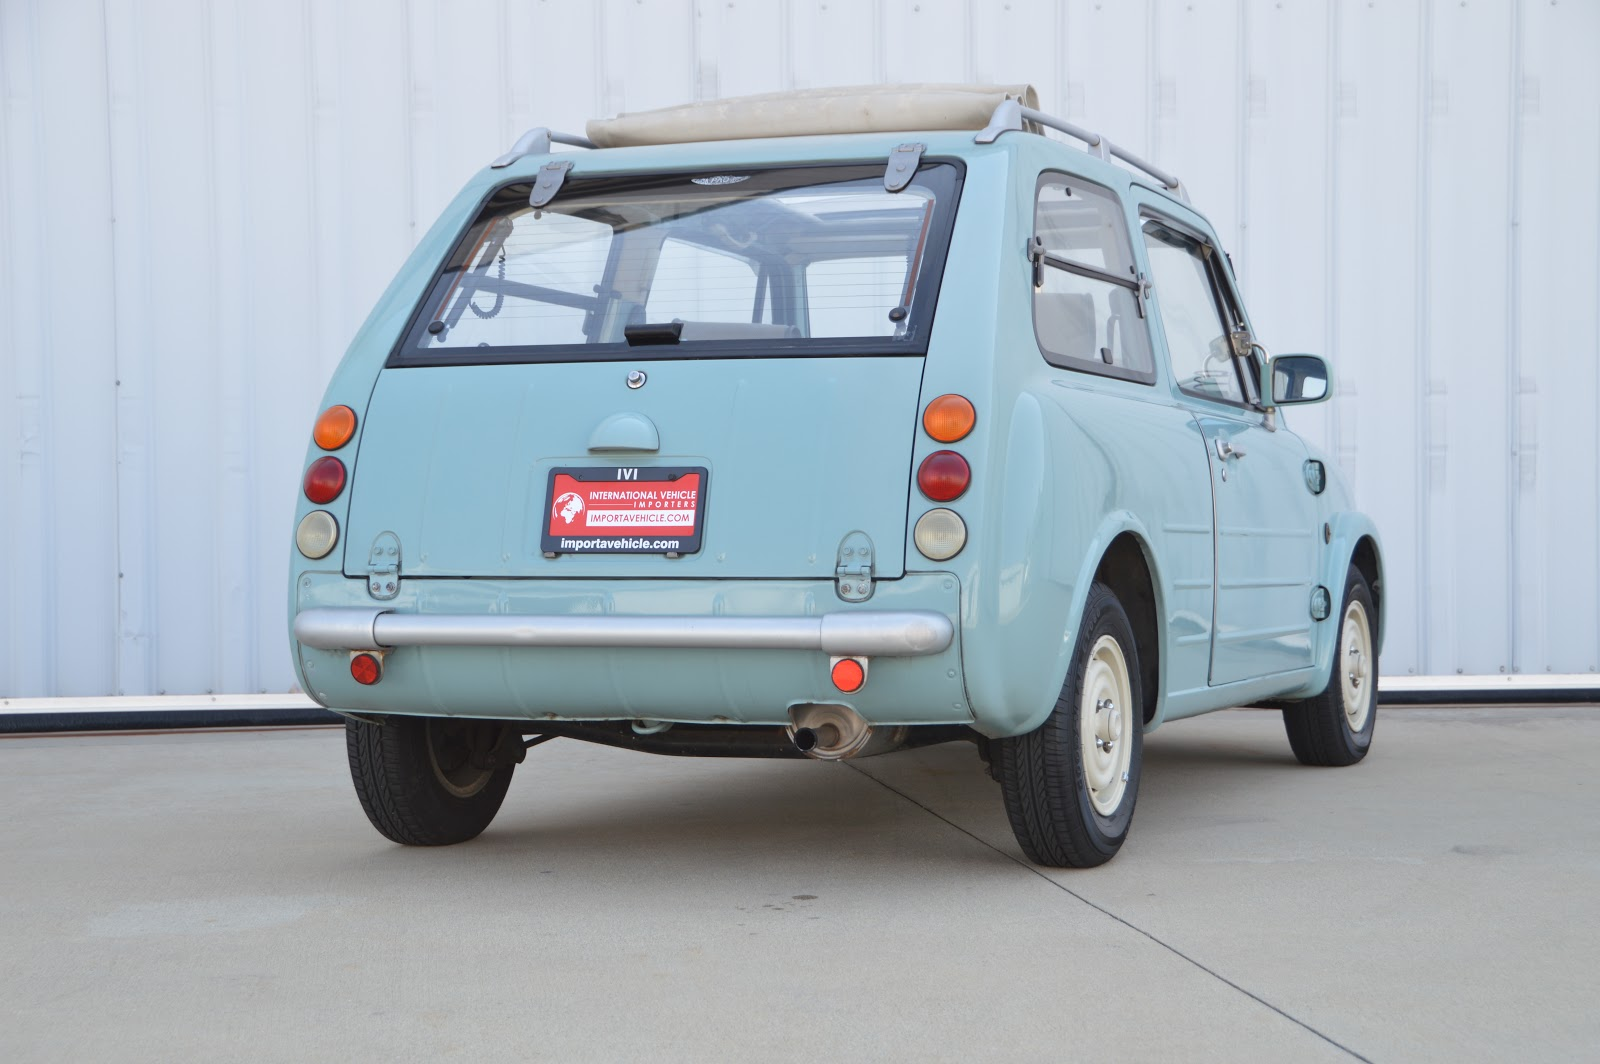 1989 Nissan Pao for sale in Long Beach and Ontario(USA) | Vehicle ...